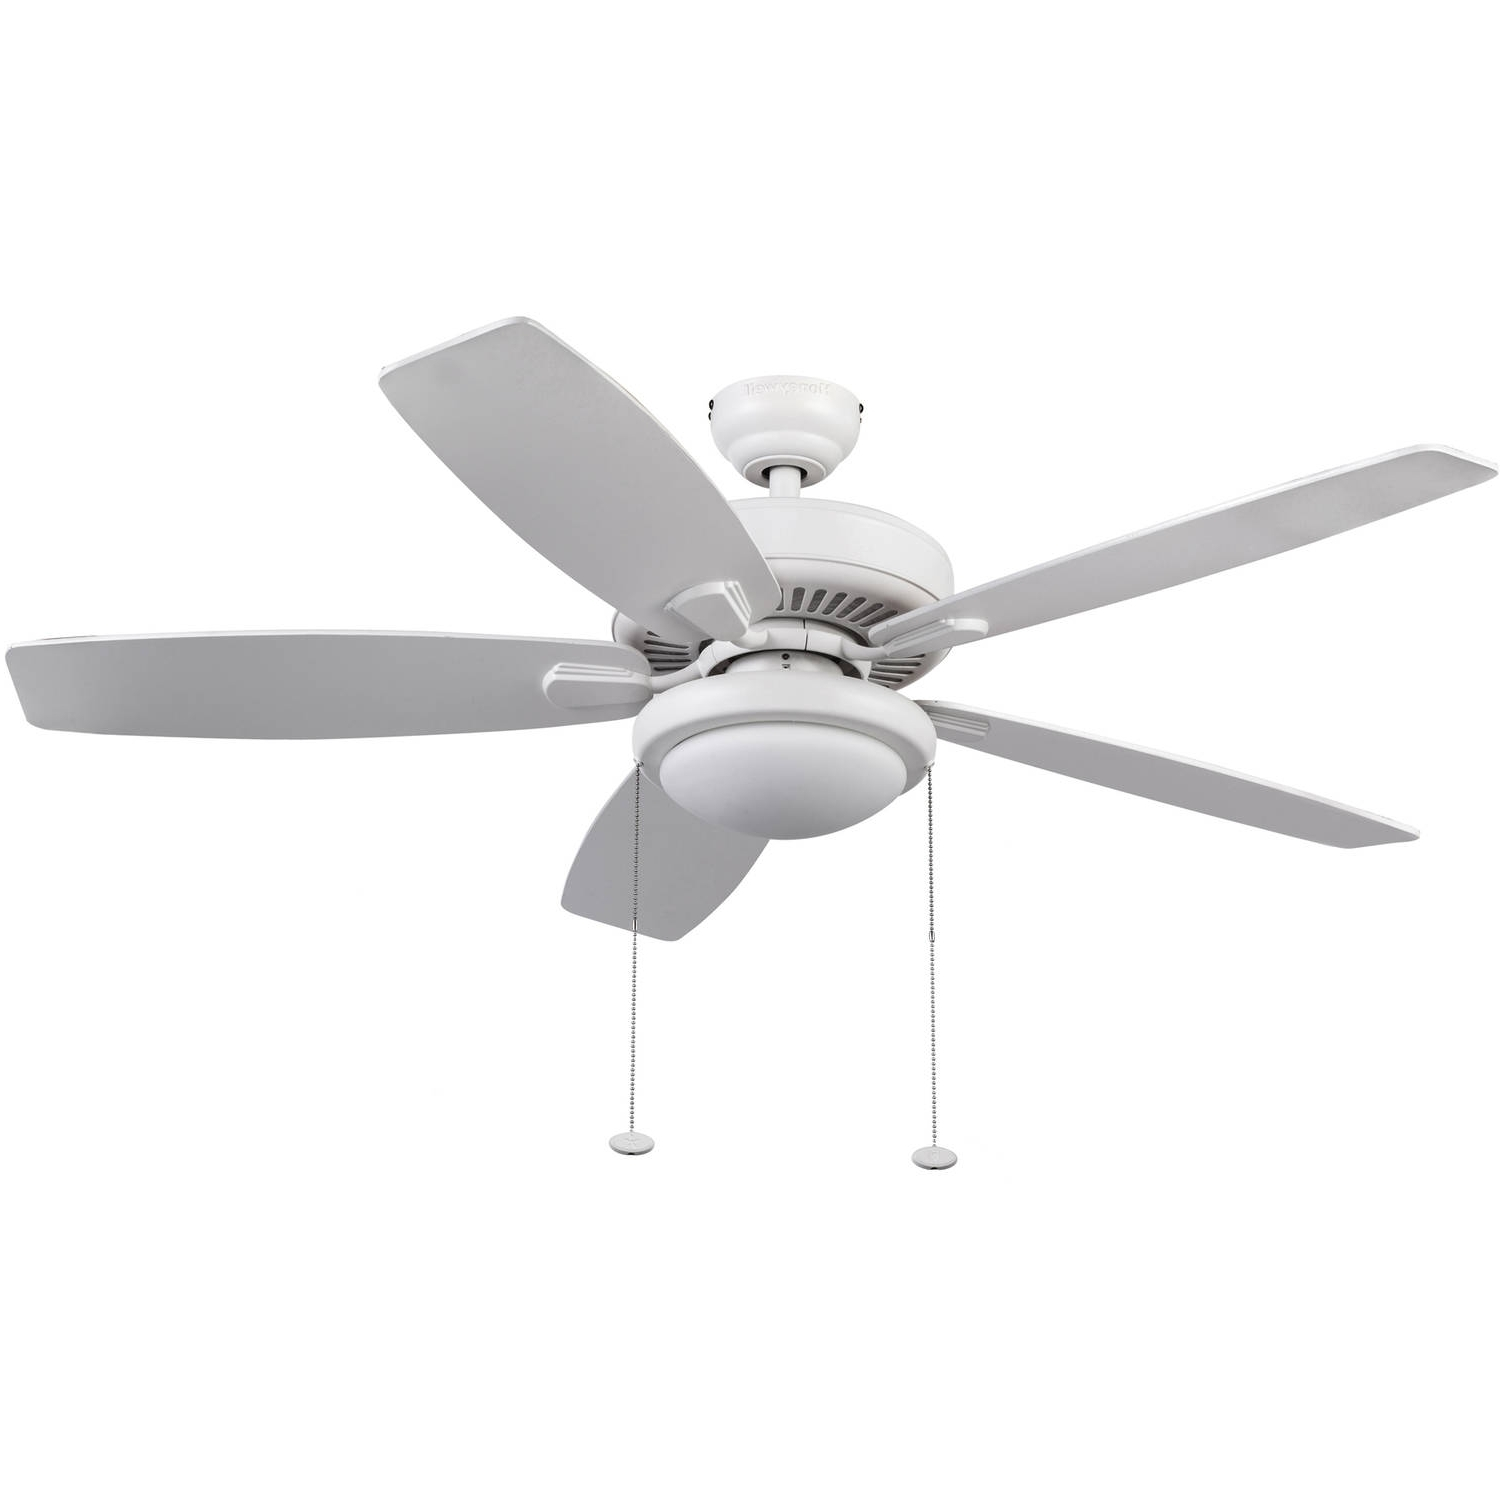 "Honeywell Blufton 52"" White Outdoor Ceiling Fan – Walmart Pertaining To 2018 Outdoor Ceiling Fans At Walmart (Gallery 1 of 20)"